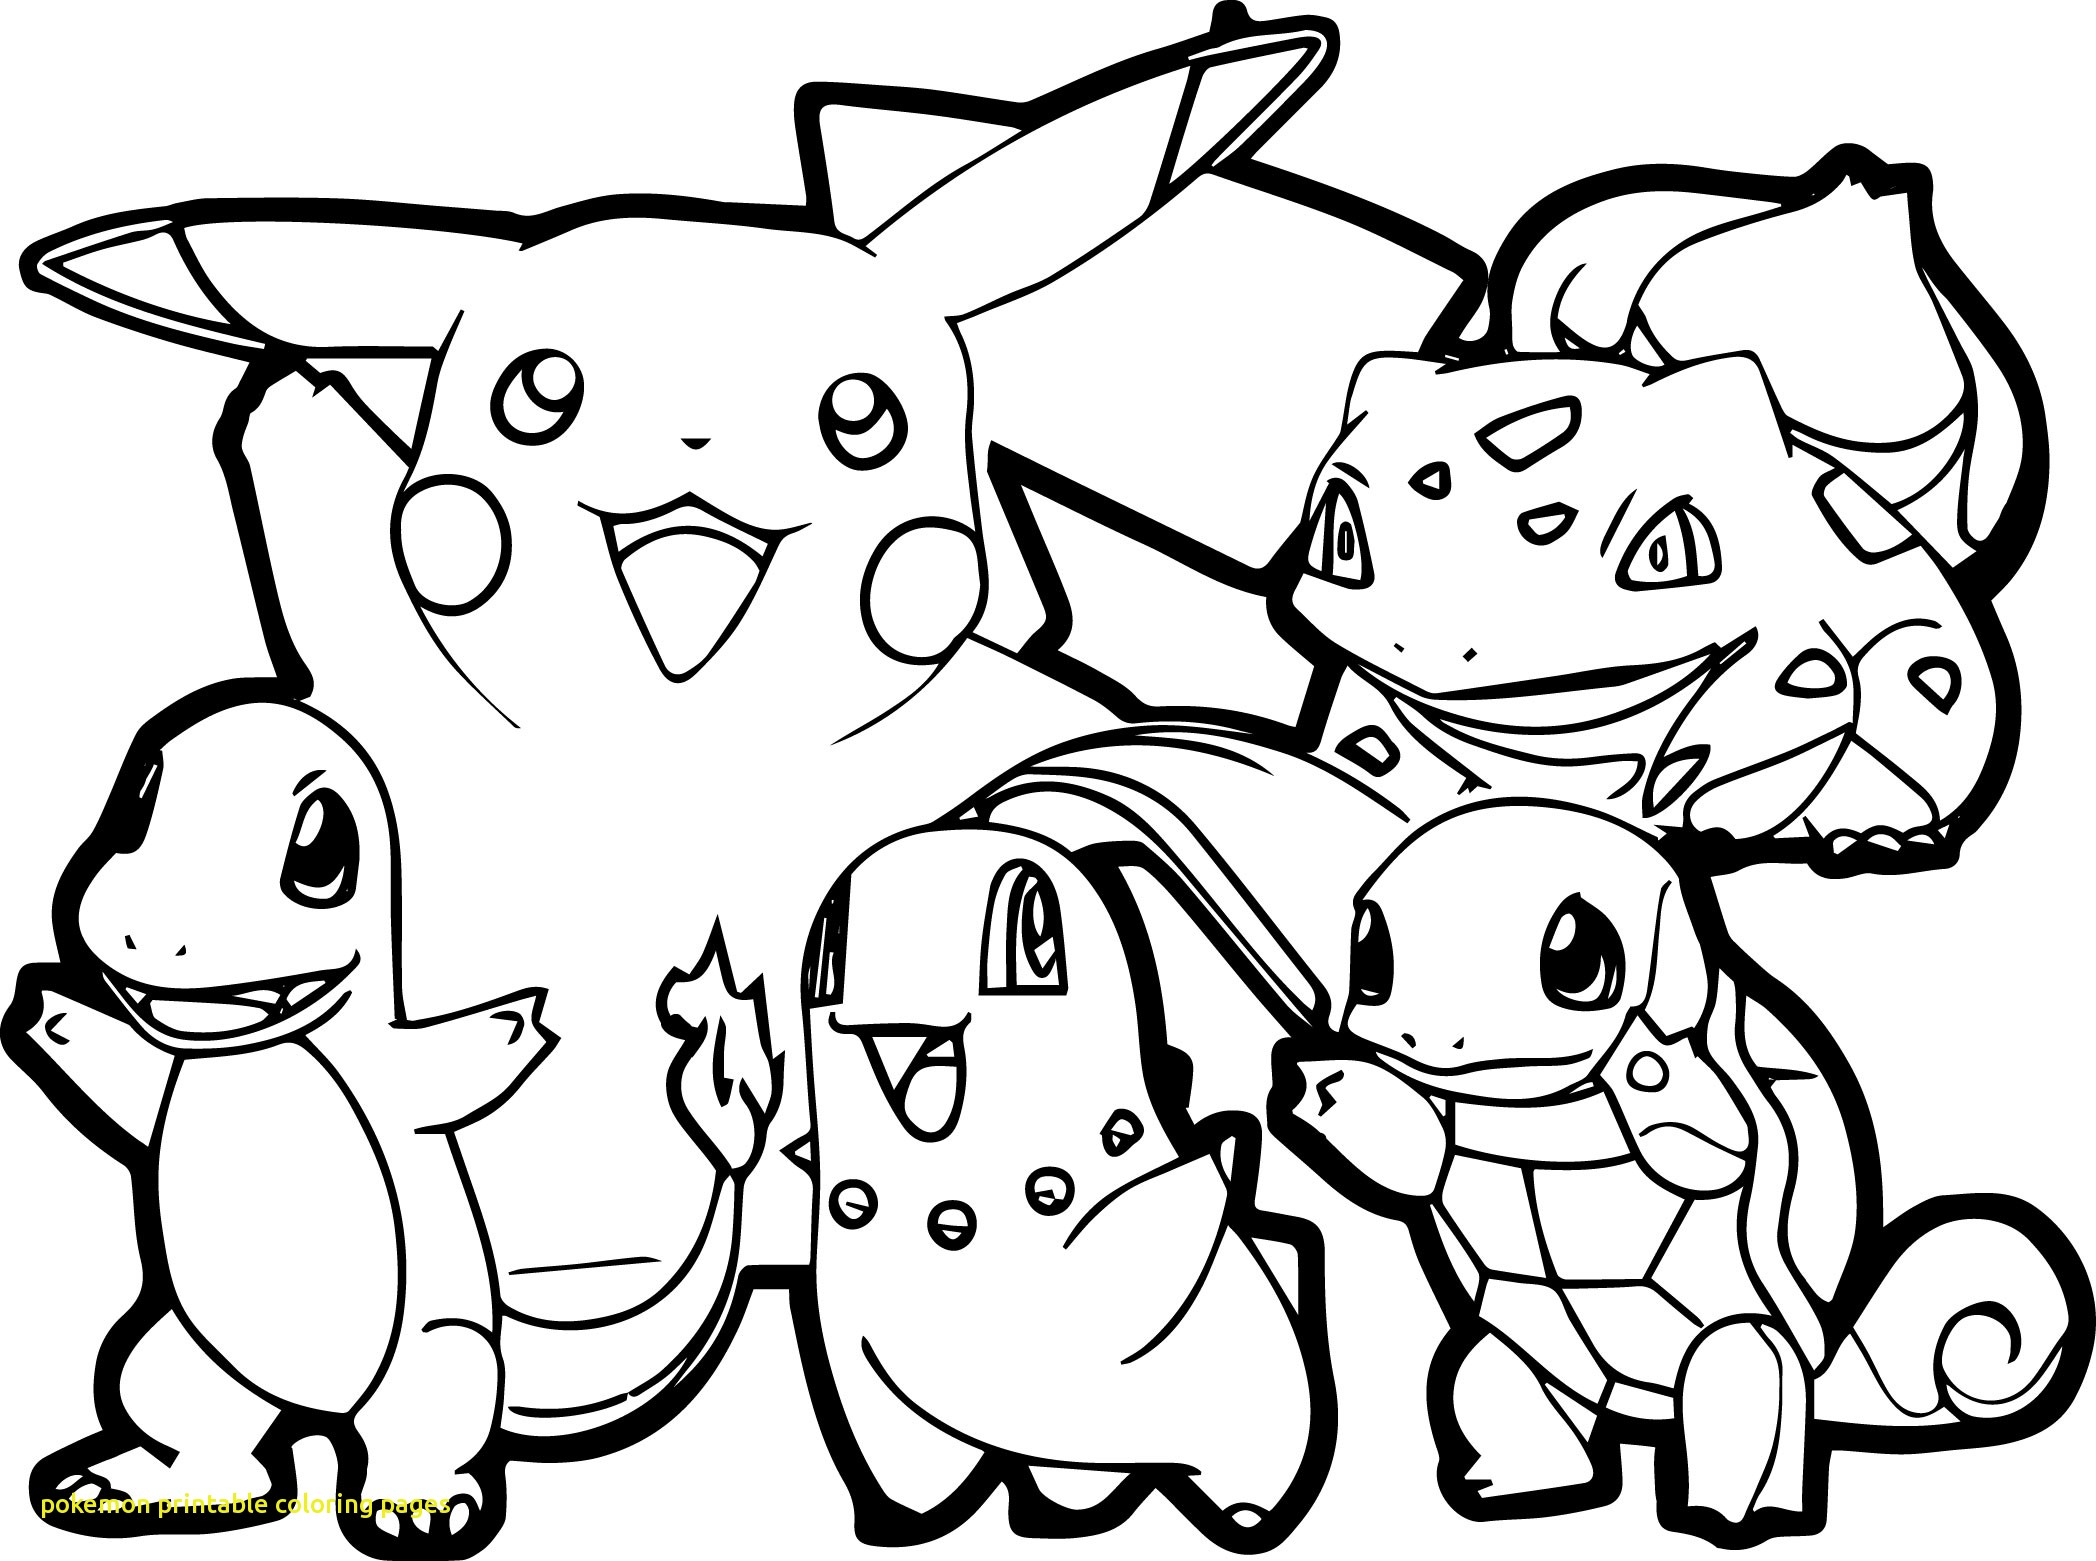 2096x1561 Pokemon Printable Coloring Pages With Pokemon Coloring Sheets